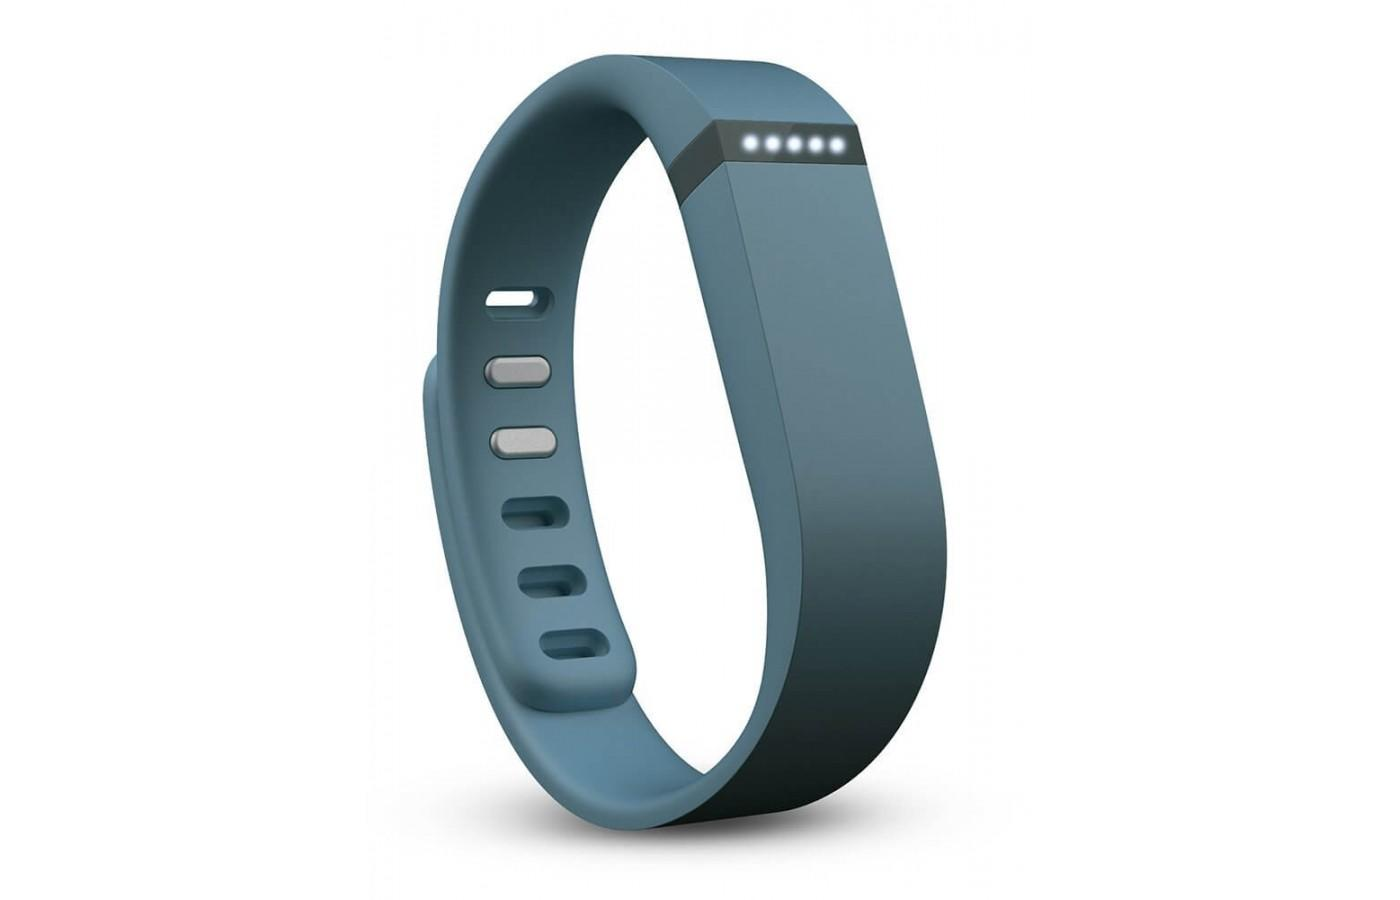 The Flex was Fitbit's first band tracker